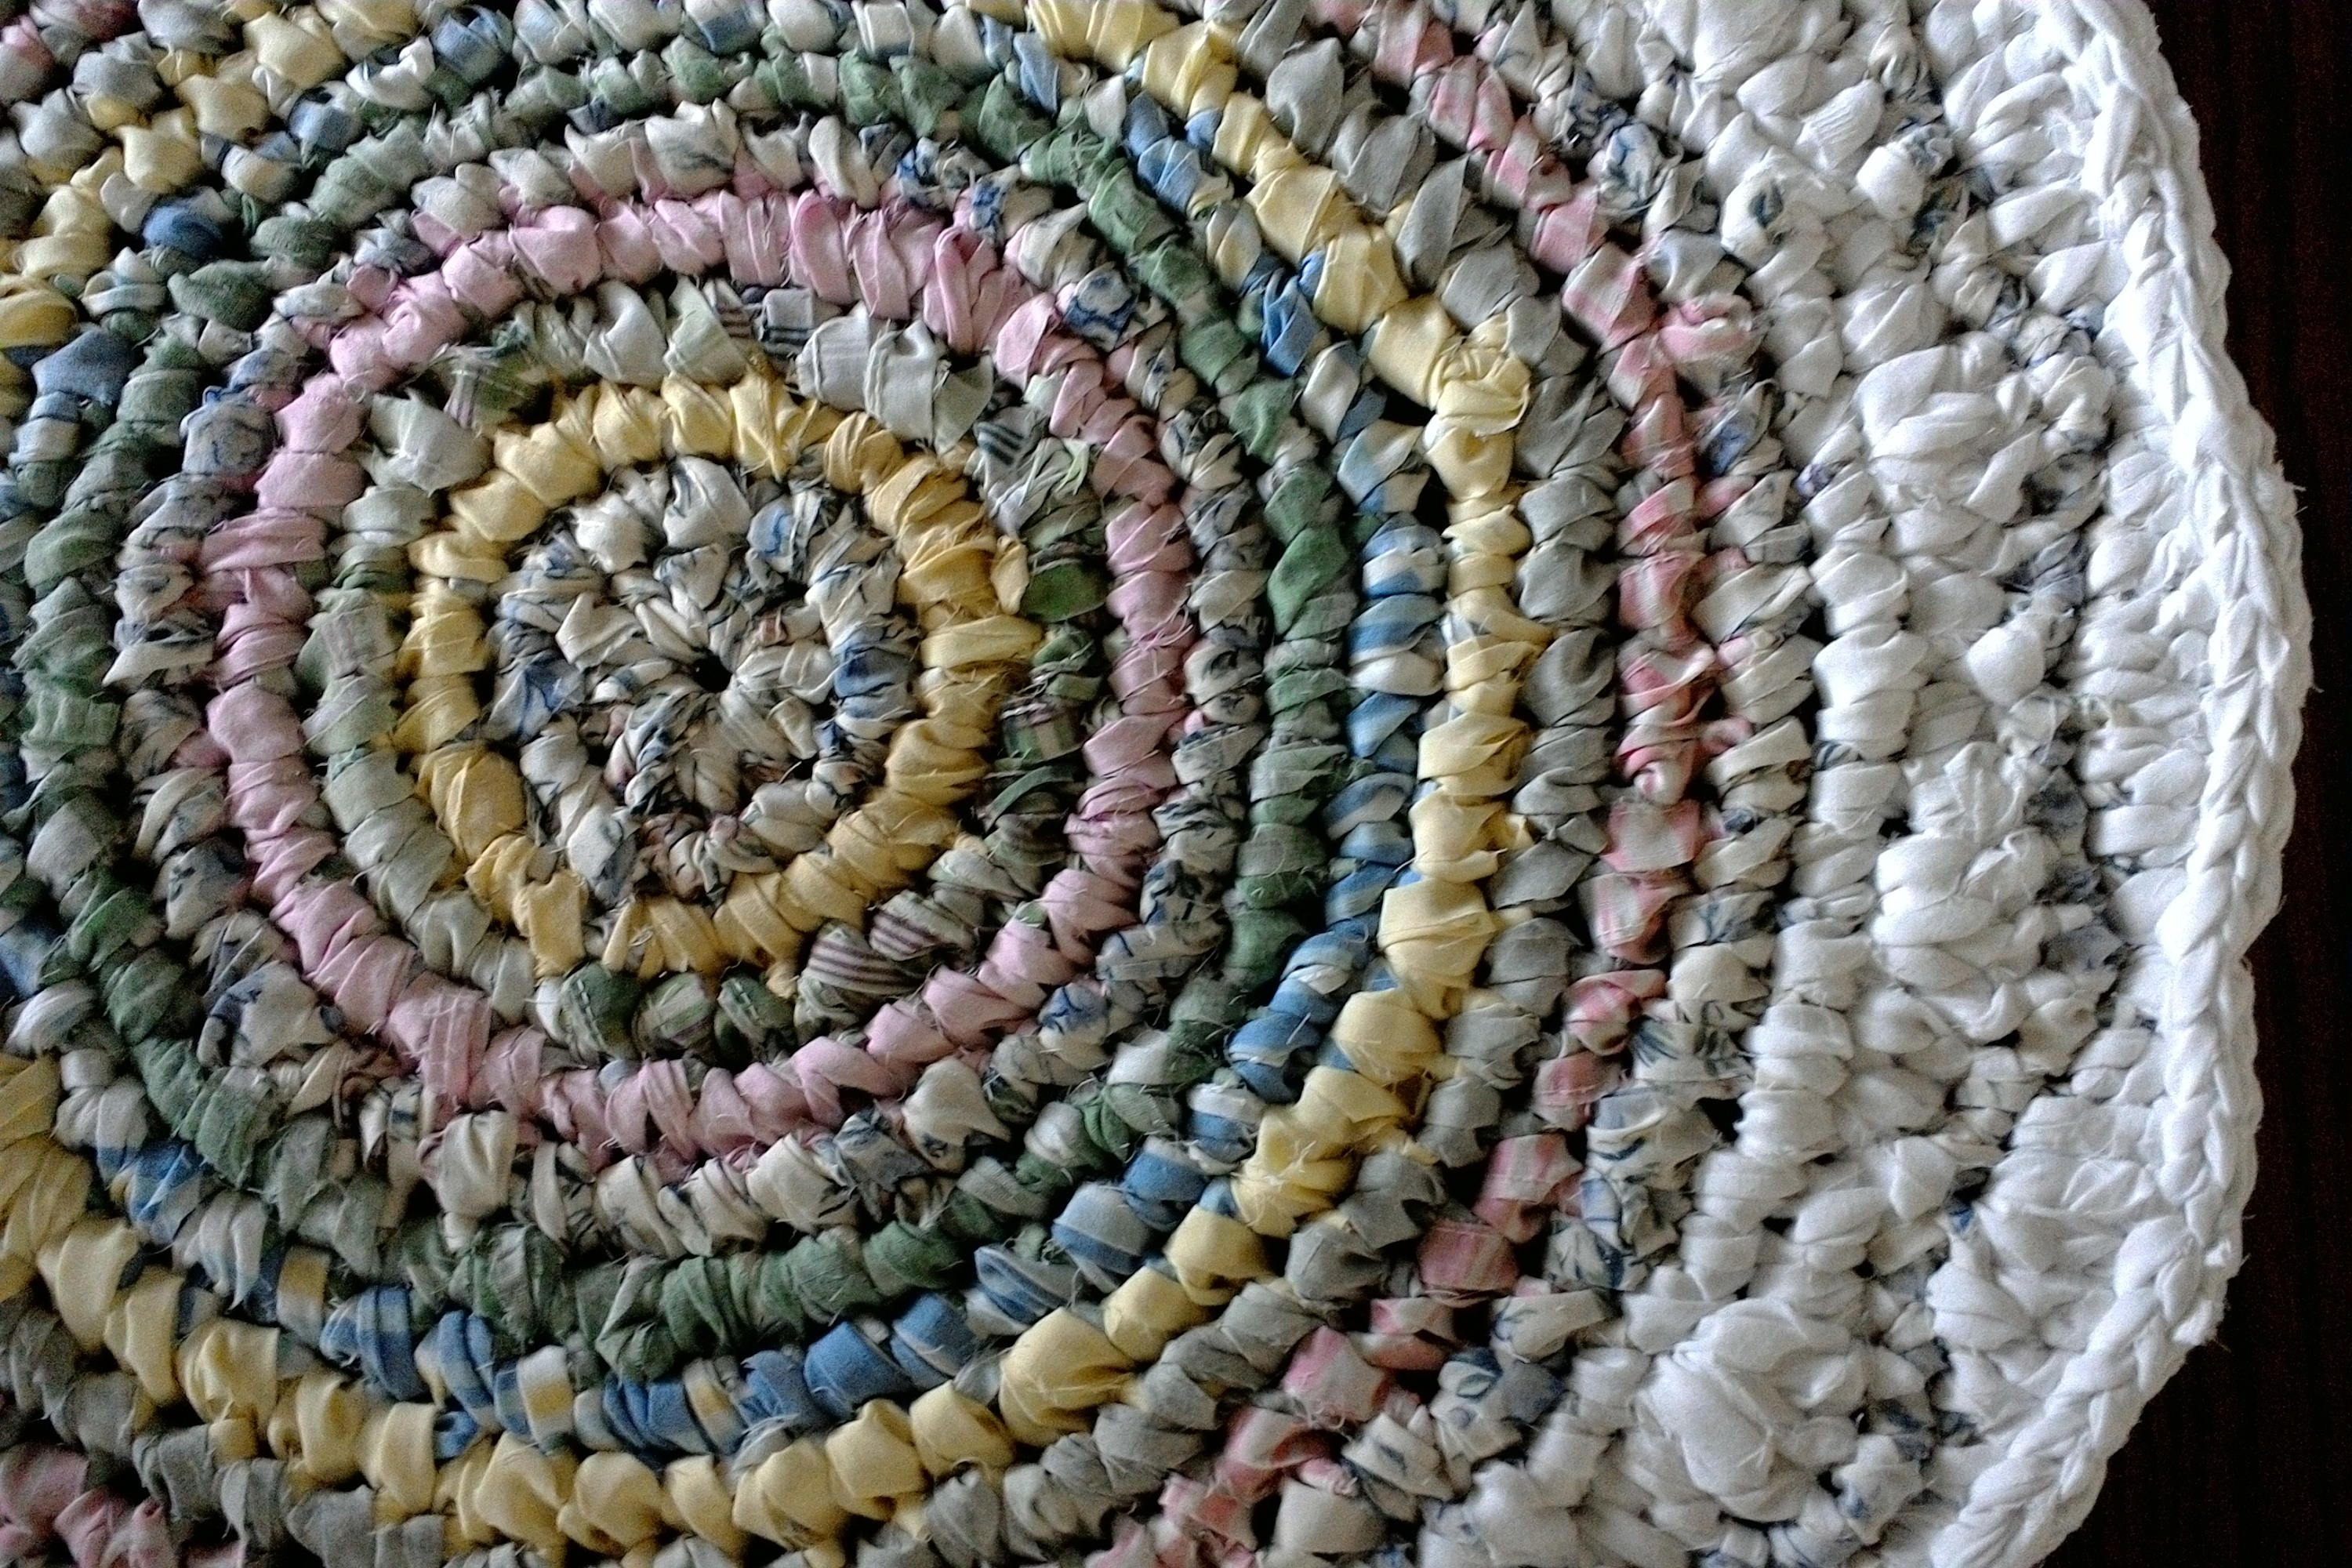 Round Rag Rug 24 Small White Pastel Colored Rag Rug Crocheted